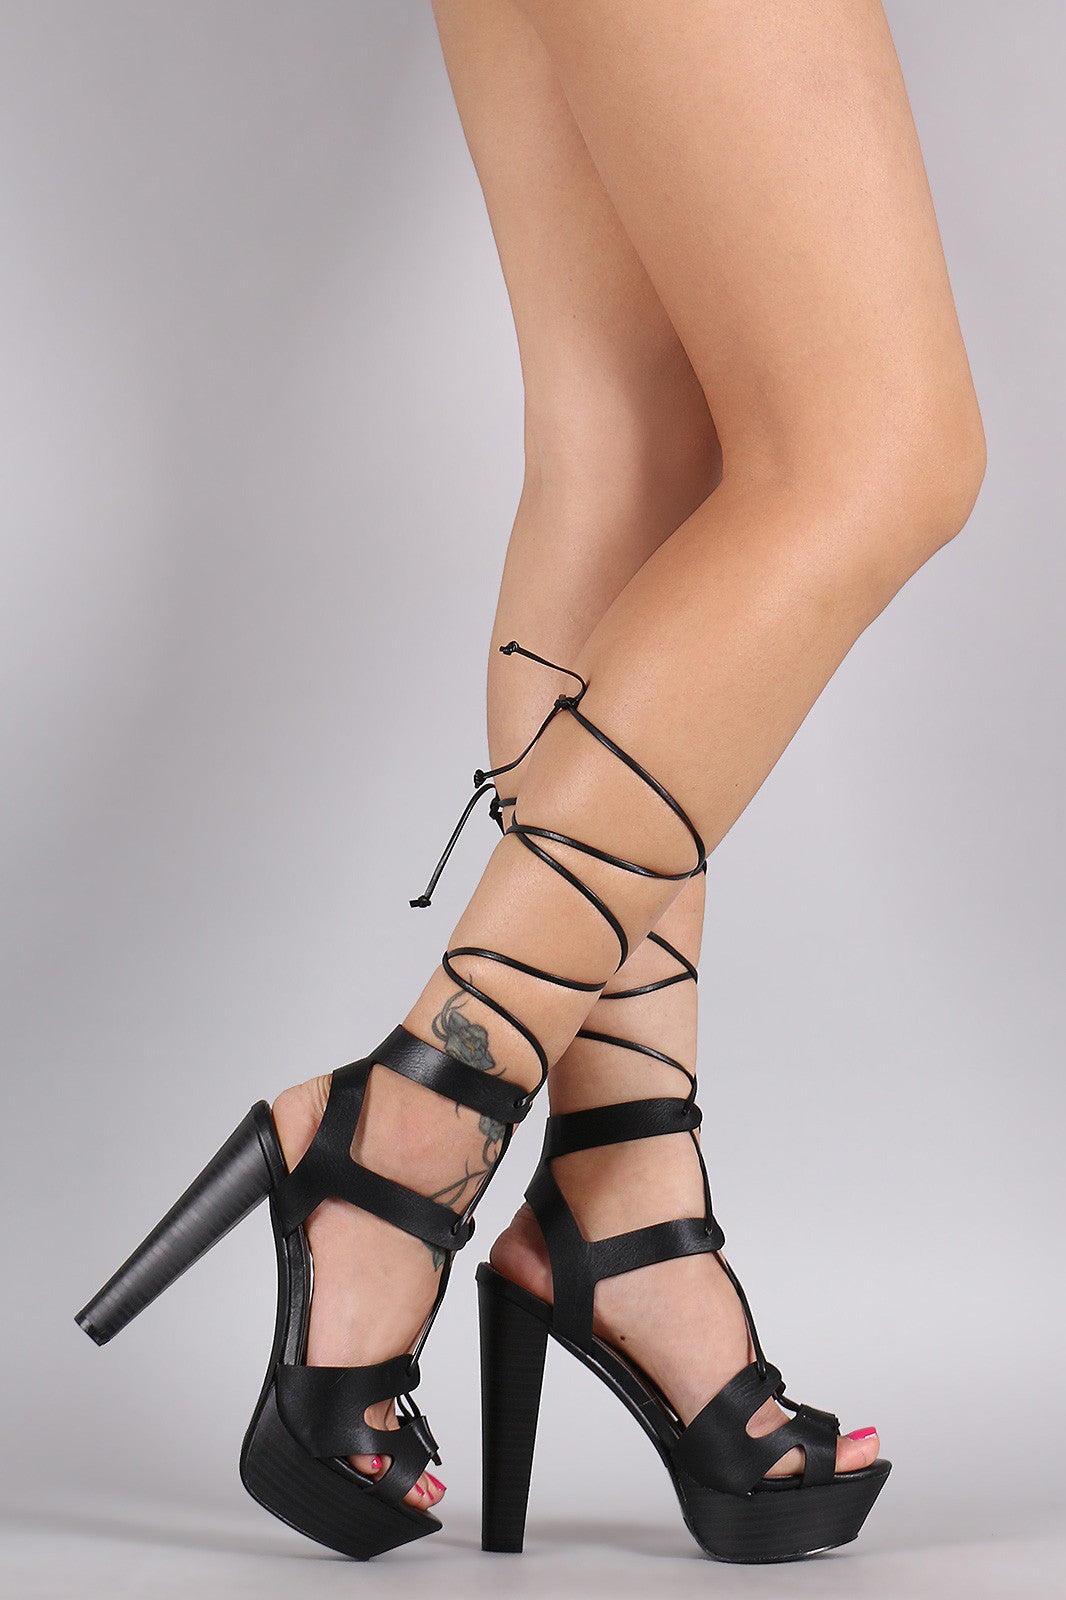 Breckelle Strappy Lace Up Platform Heel - Thick 'N' Curvy Shop - 8